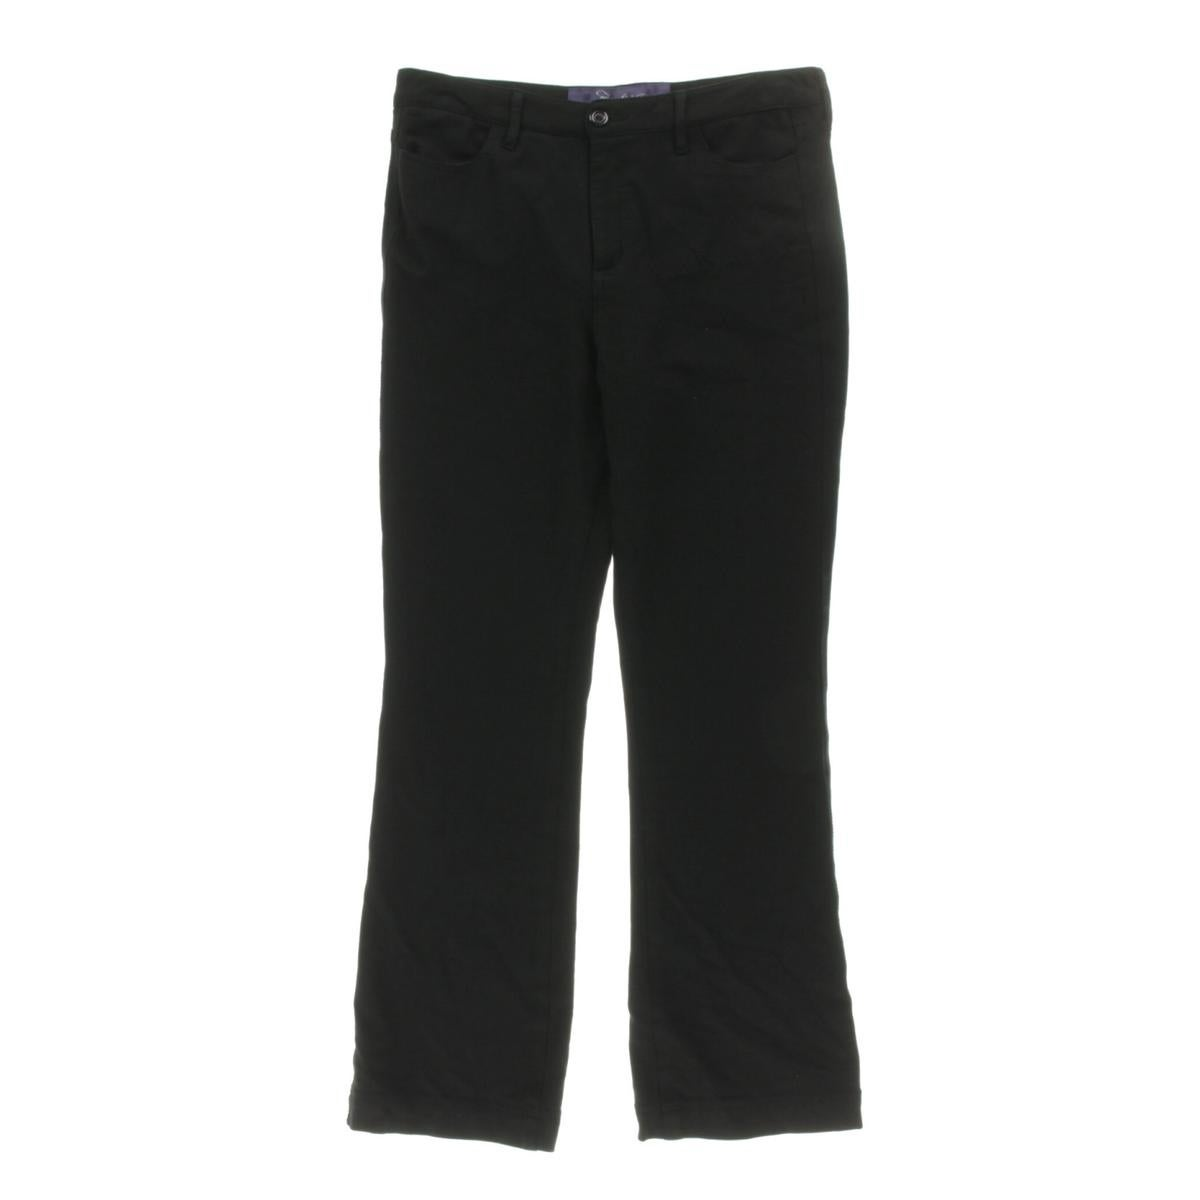 2882b48a8f263 Shop Not Your Daughter s Jeans Womens Casual Pants Ponte Slimming Fit - 12  - Free Shipping Today - Overstock - 19480022